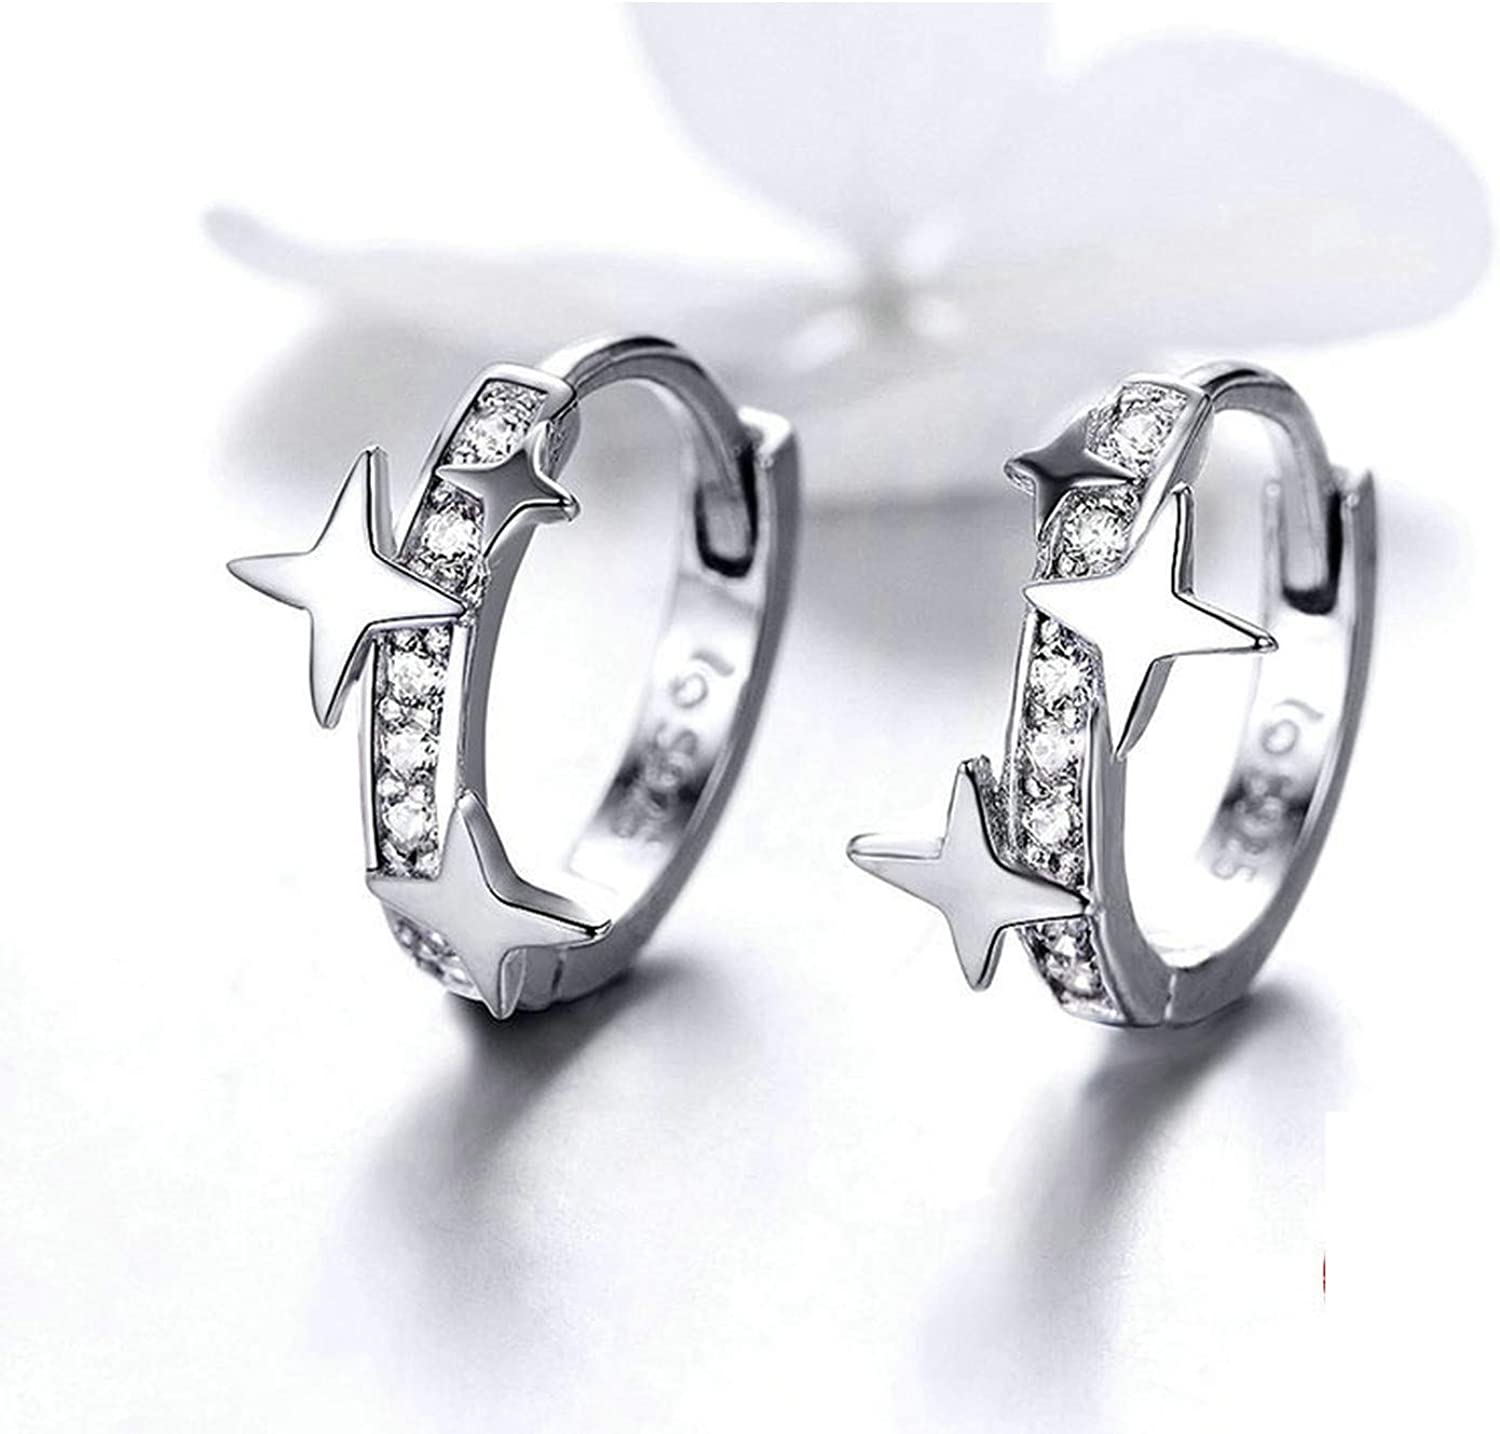 Small Hoop Earrings Sterling Silver Clear Cz Universe Tiny Earrings For Girl Gifts Anti-Allergy Jewelry